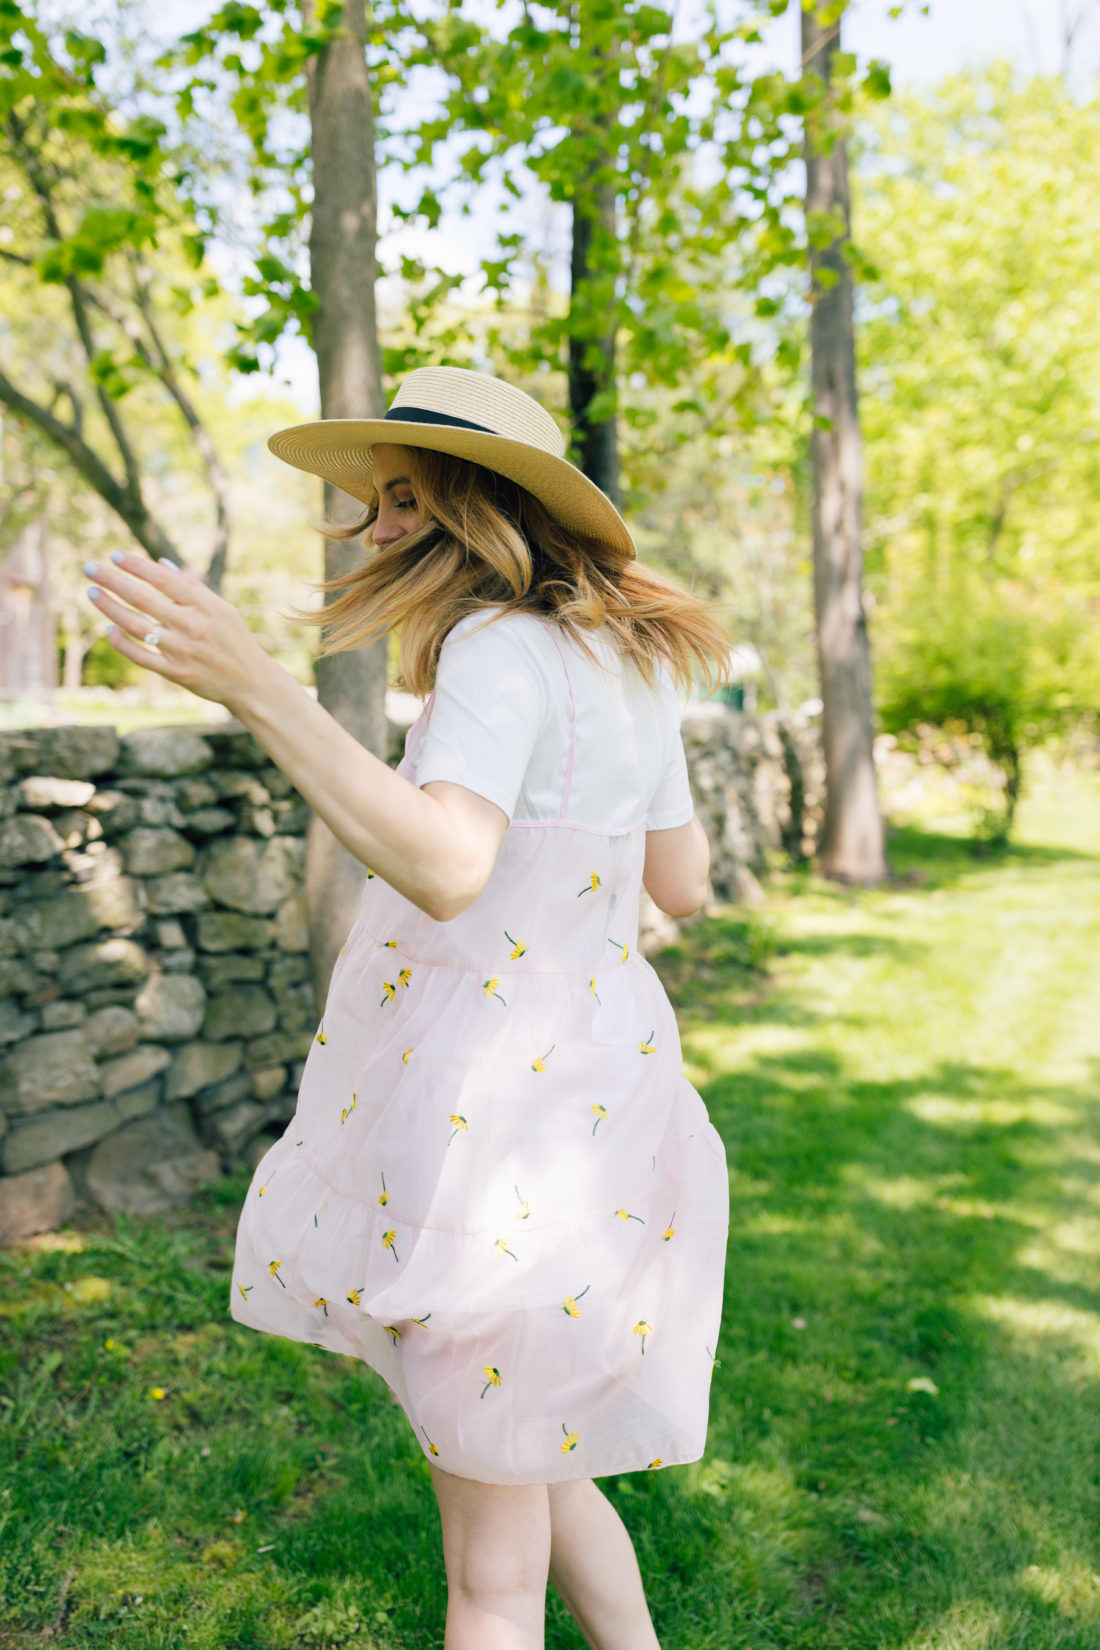 Eva Amurri Martino of Happily Eva After twirls around in a dress and sunhat